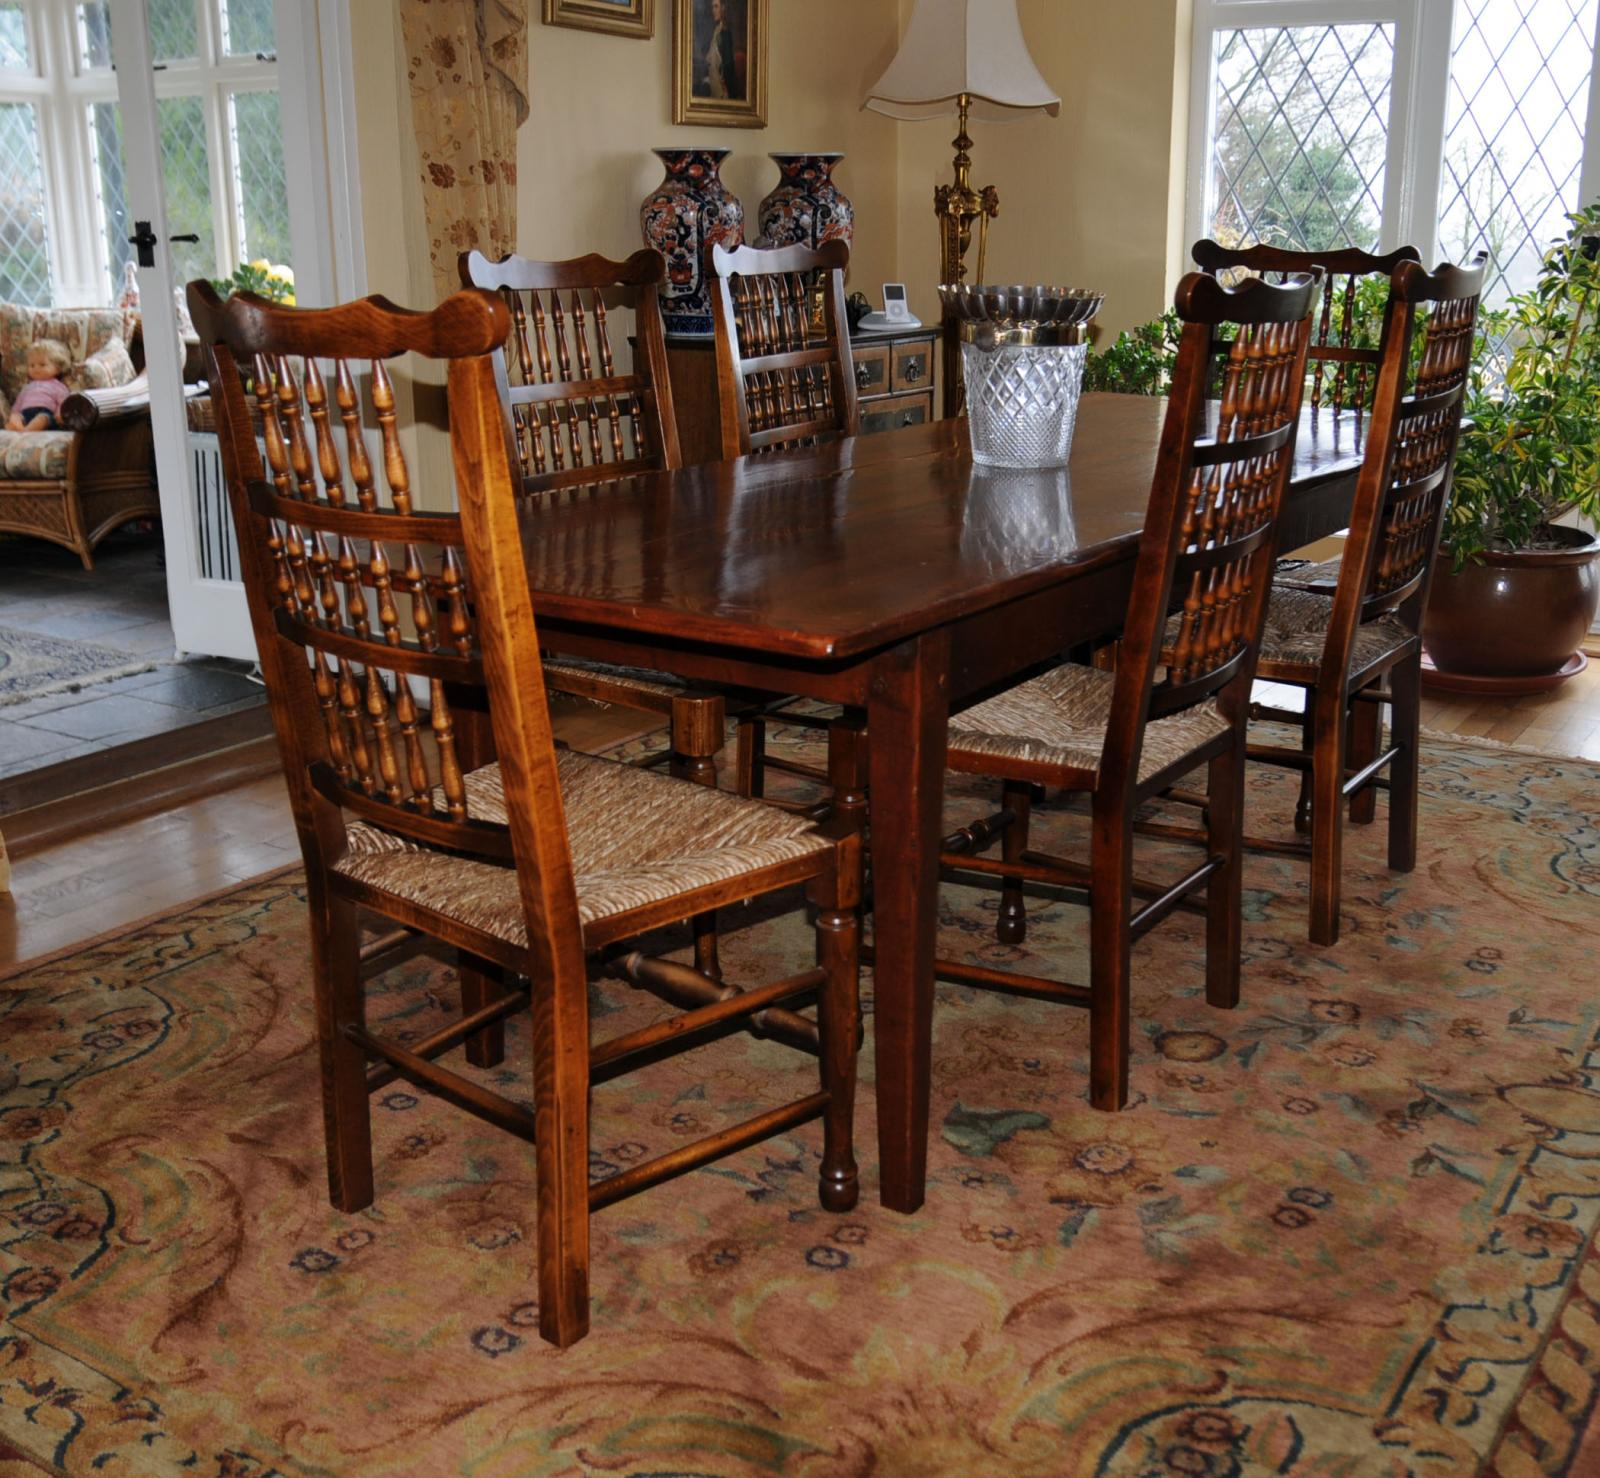 Oak kitchen dining set refectory table spindleback chairs for Kitchen dining sets on sale